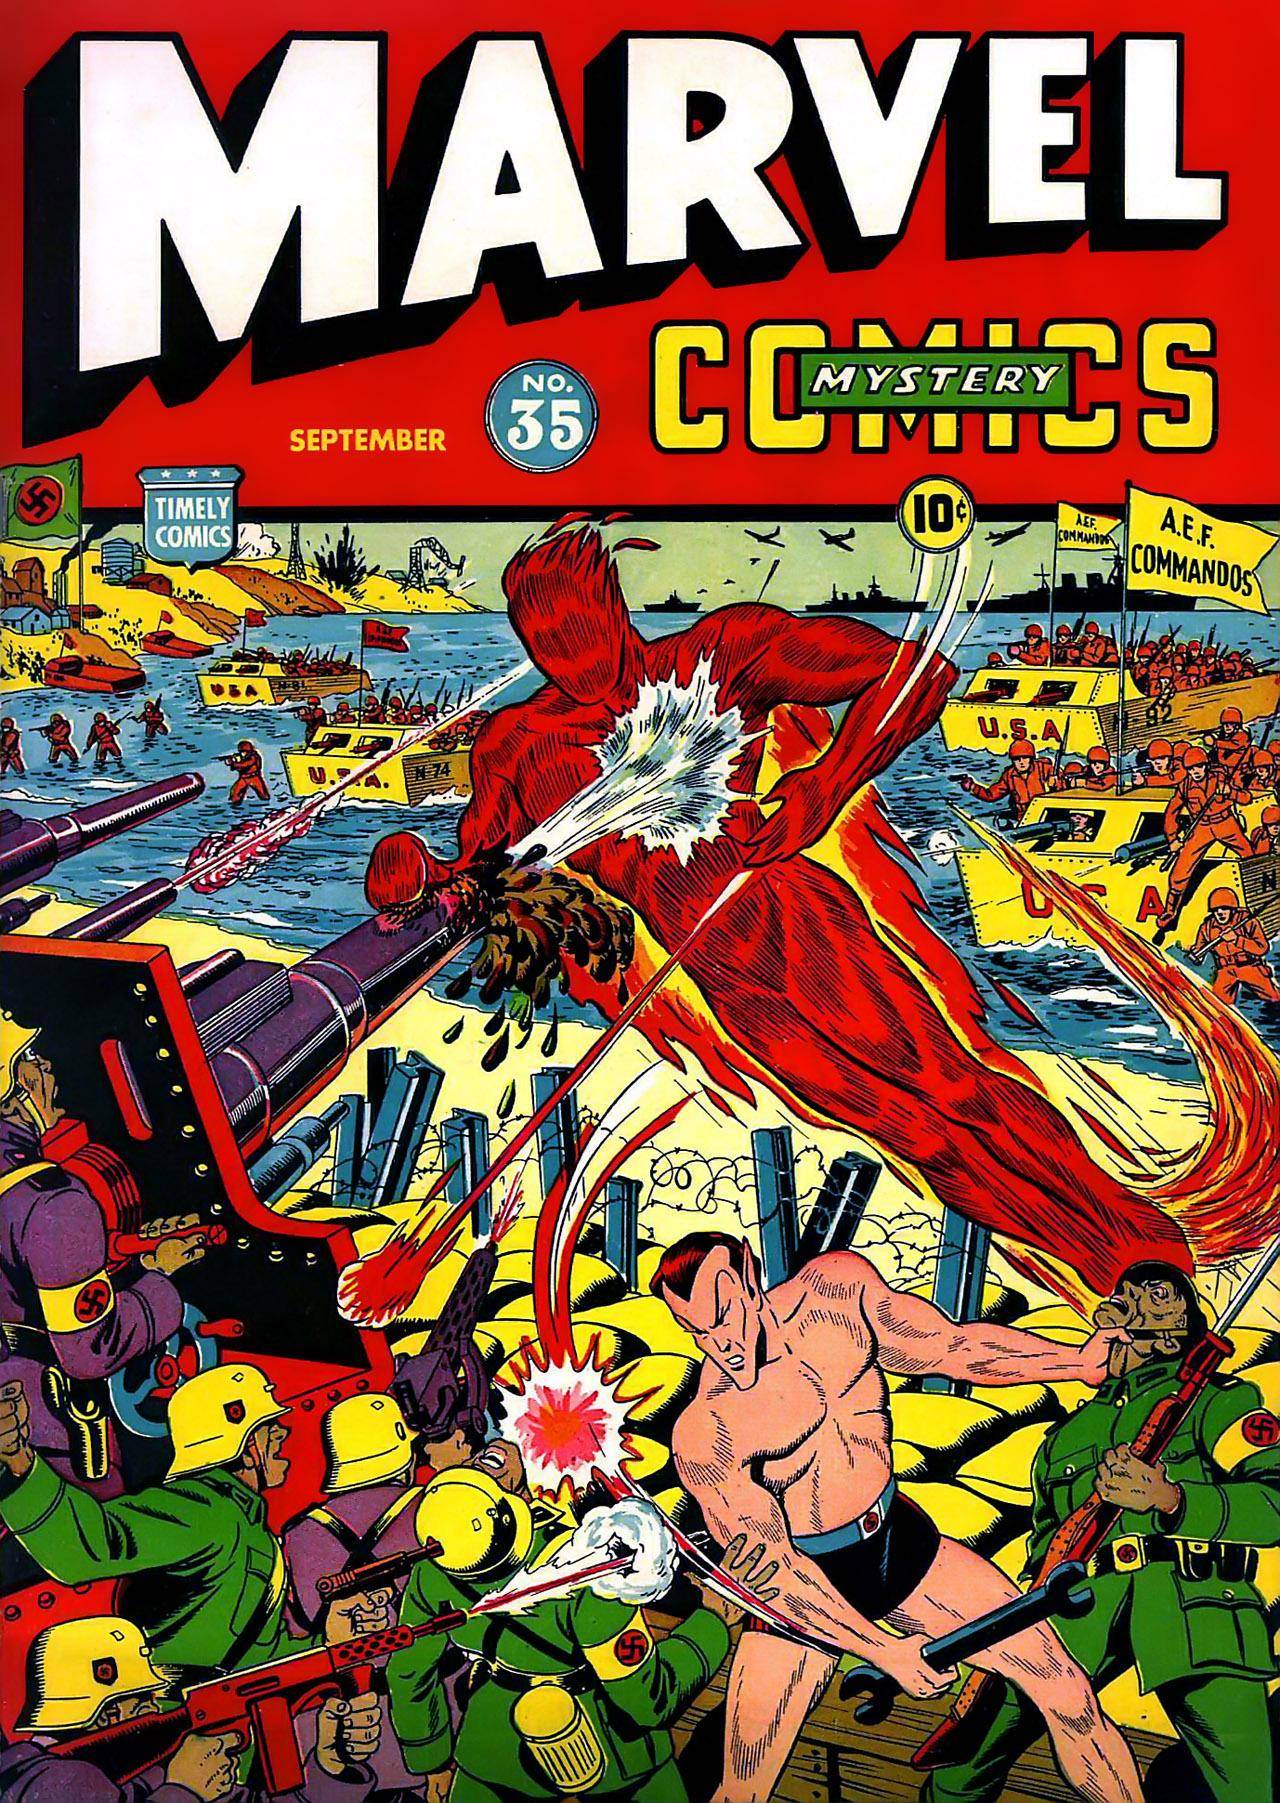 Marvel Mystery Comics v1 035